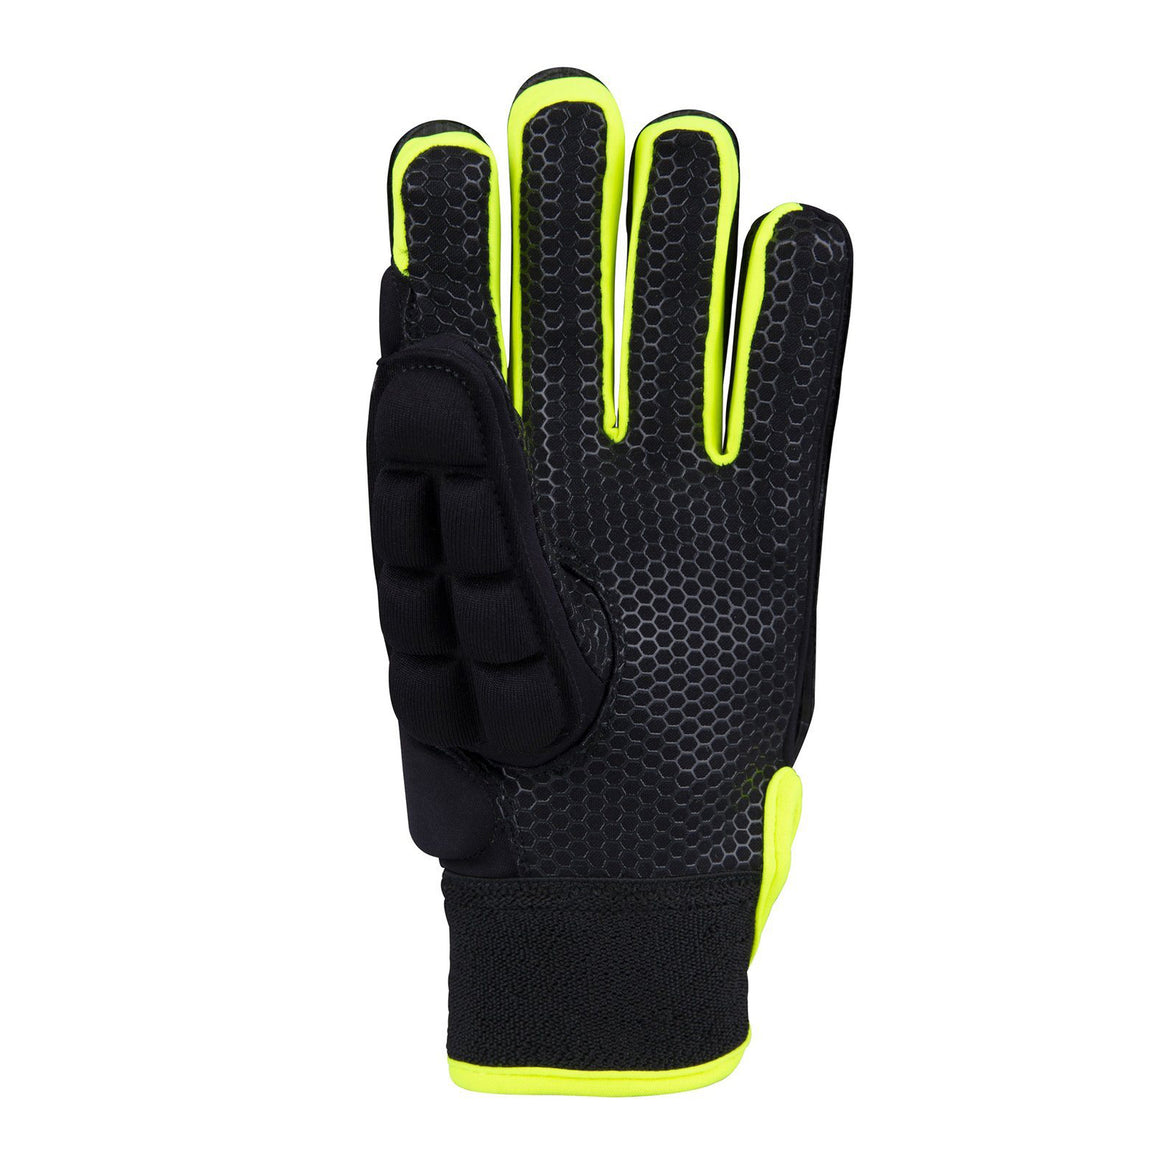 International Pro Glove for Men in Black & Lemon